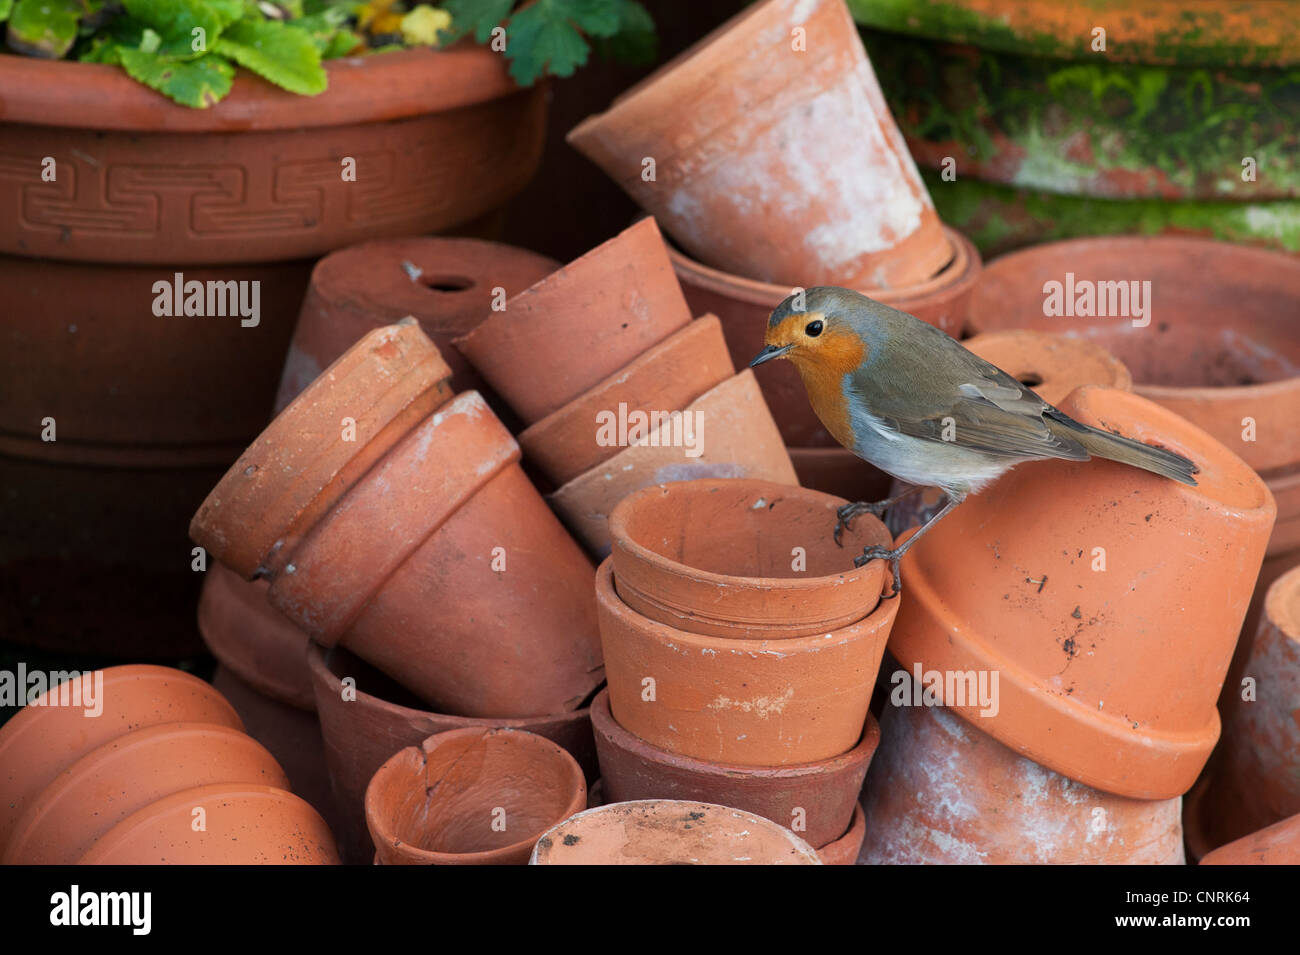 Erithacus rubecula. Robin perched on a stack of flowerpots - Stock Image